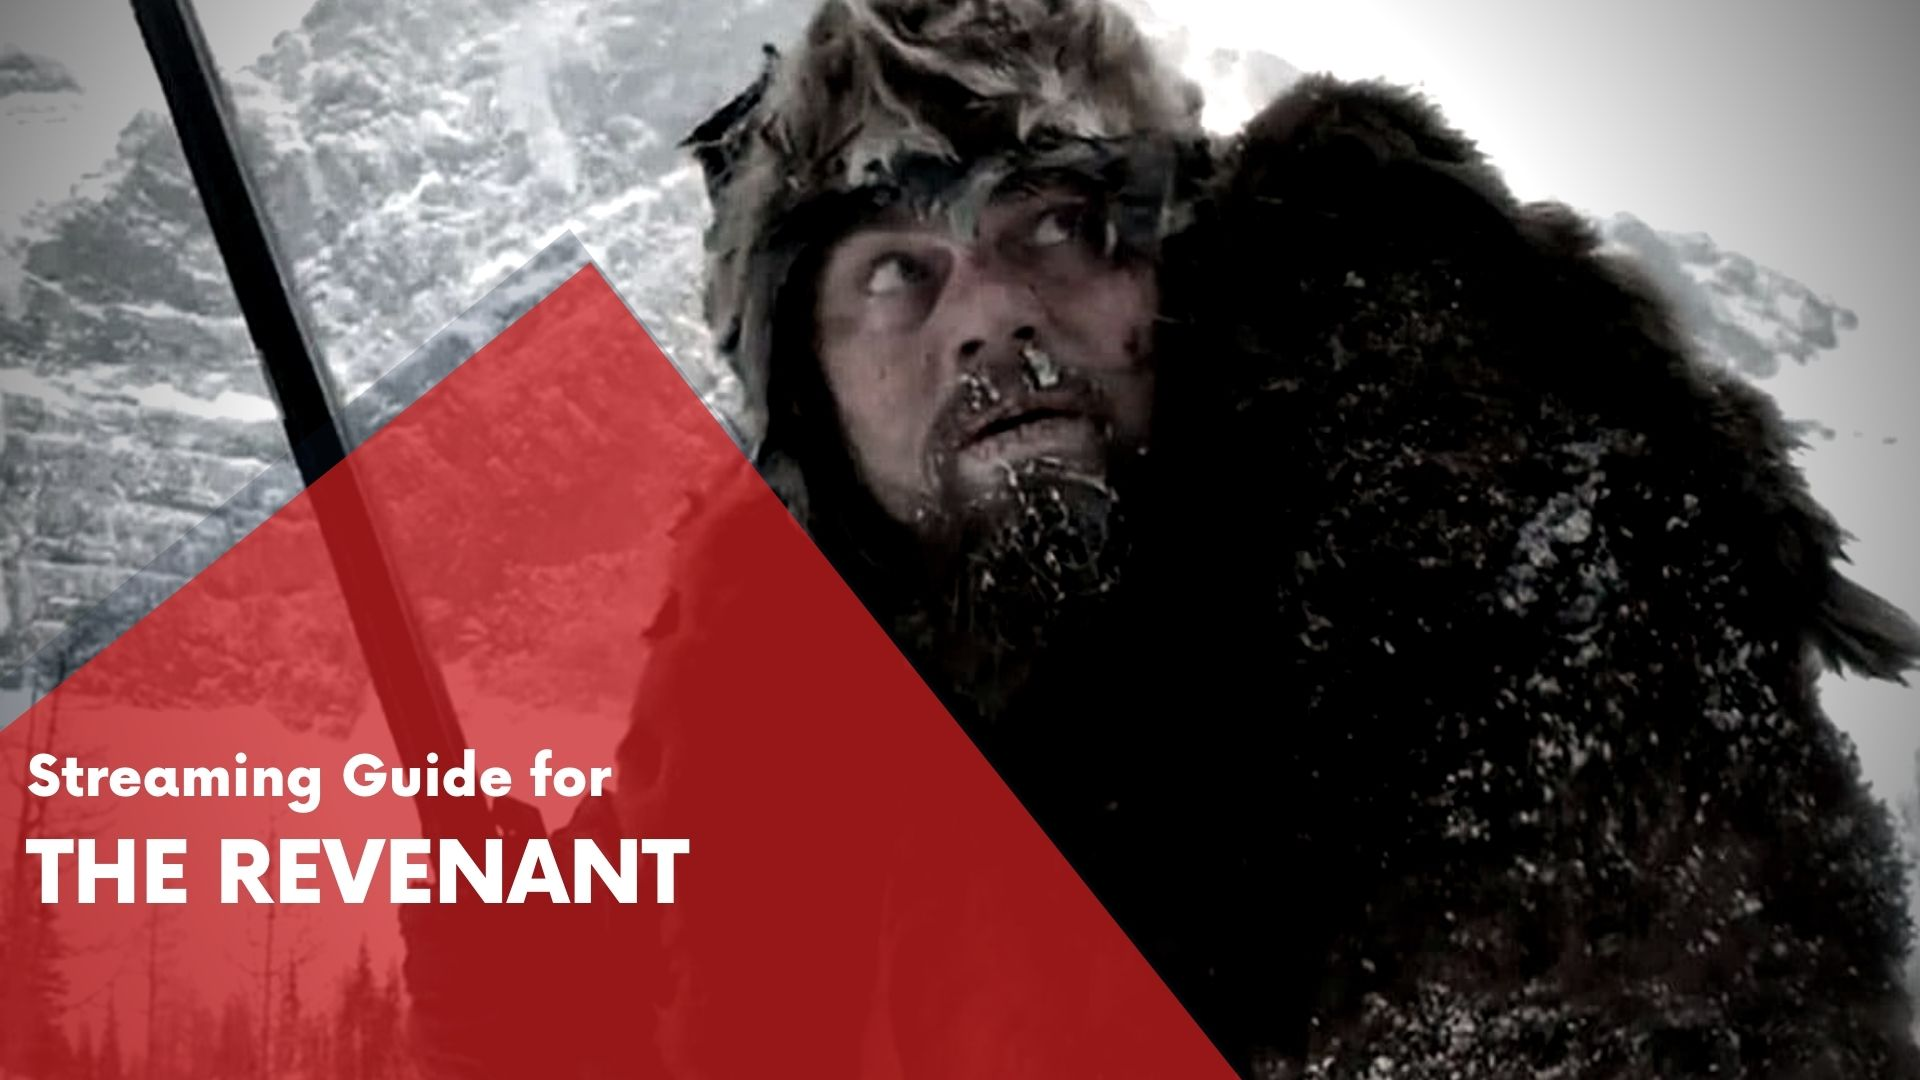 Answering if The Revenant can be watched online on Hulu